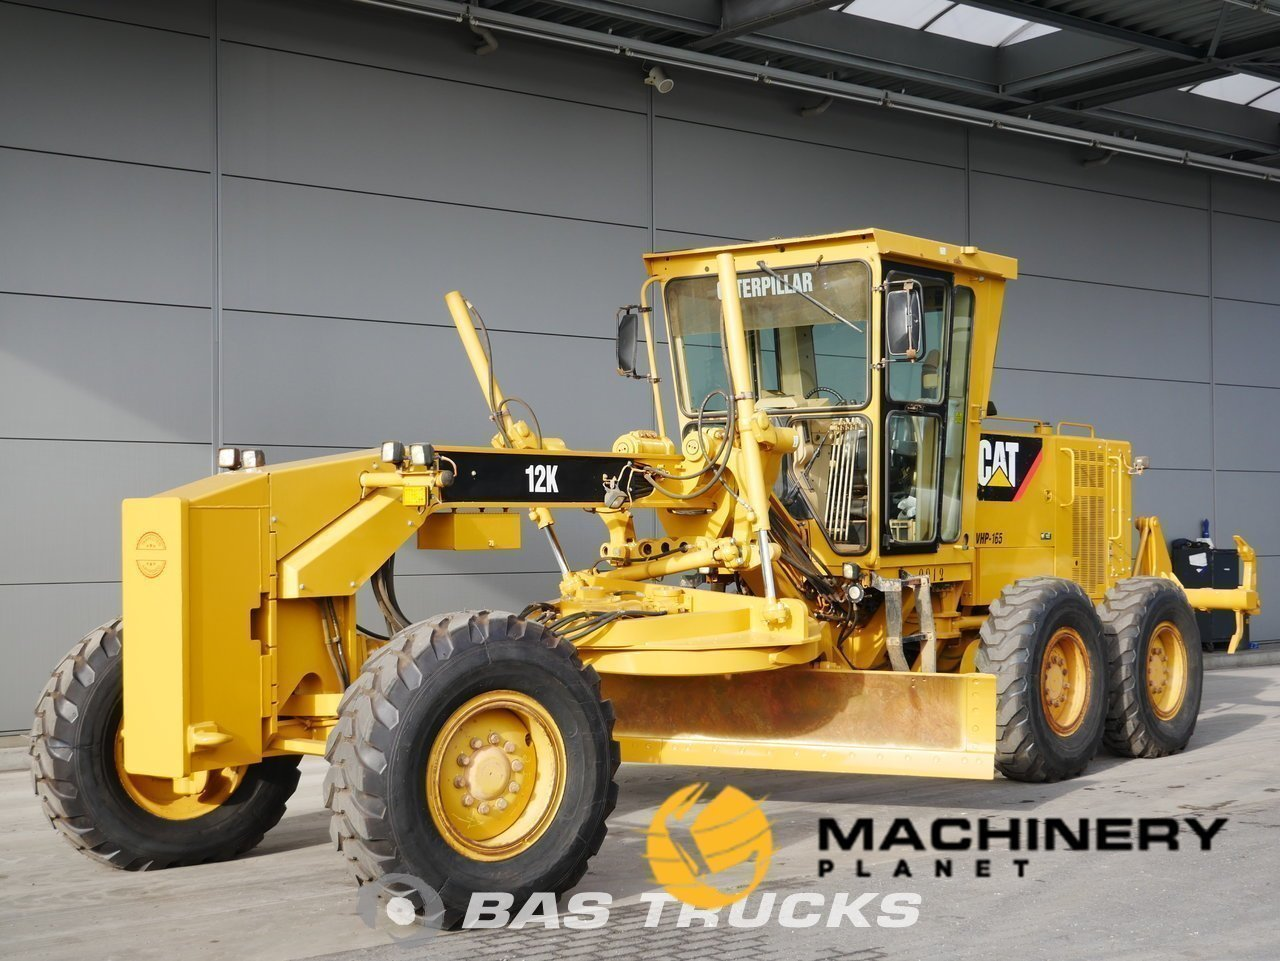 Used-Construction-equipment-Caterpillar-12K-6X4-2011_138125_1-1553939372583_5c9f3bac8e63f-1.jpg